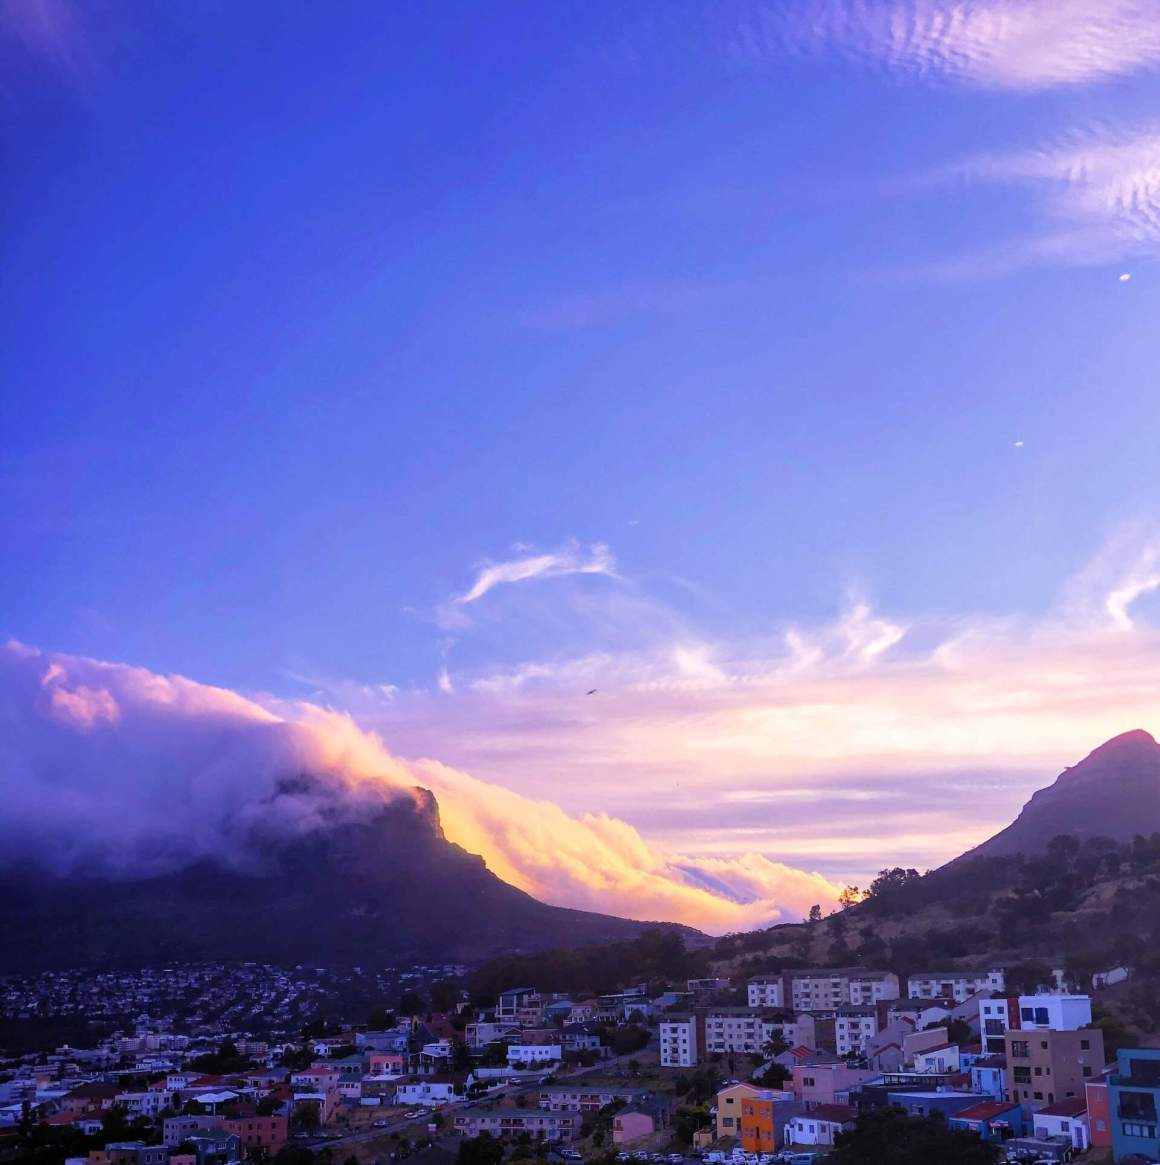 View from Bo Kaap of clouds over Table Mountain at sunset.